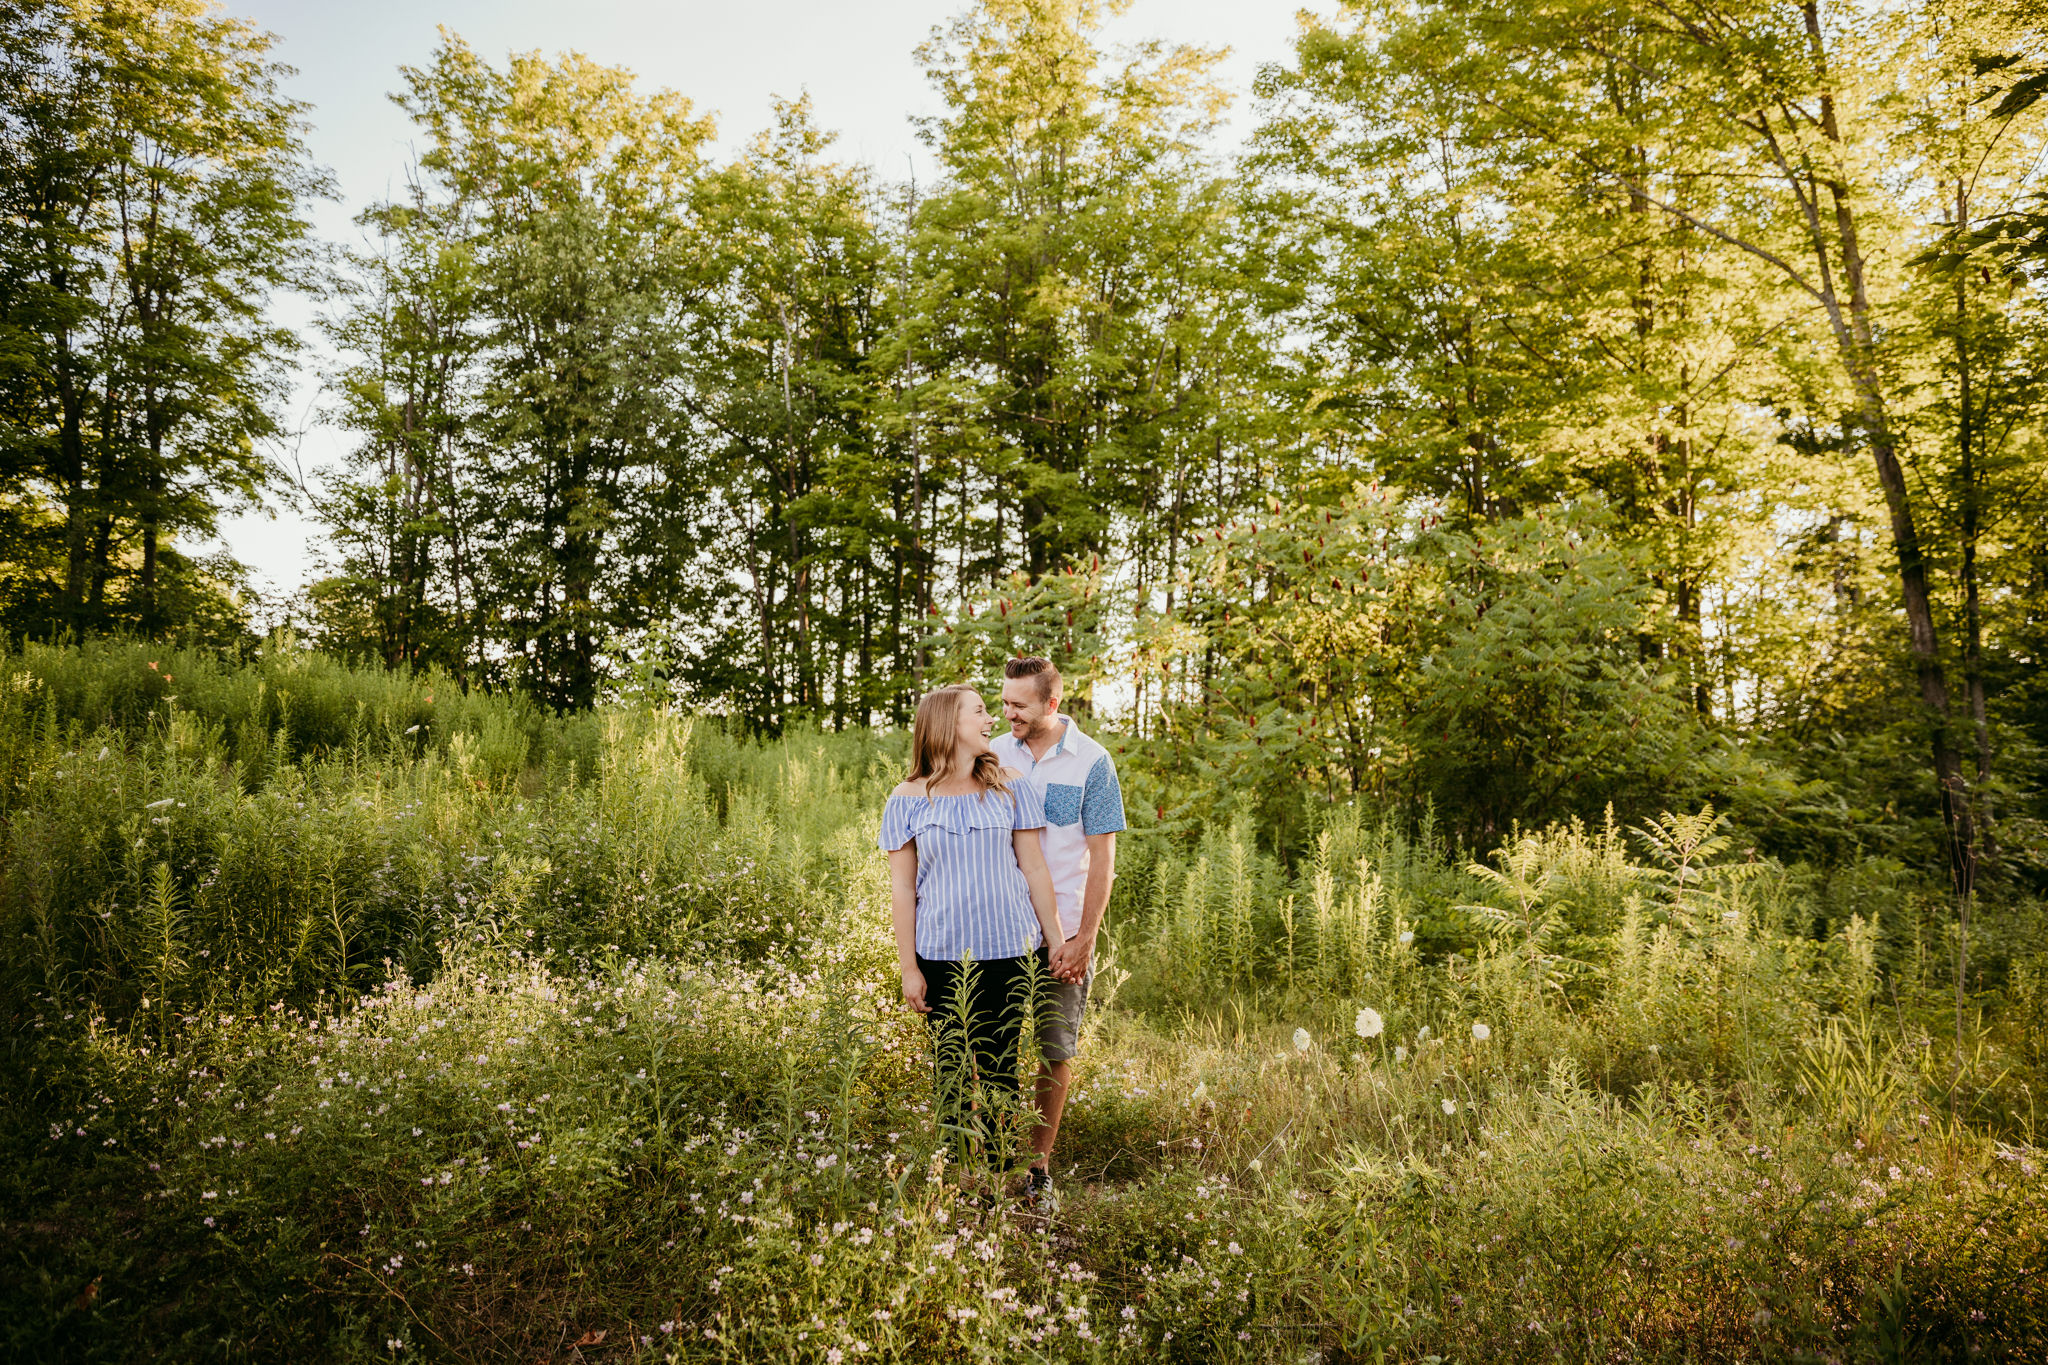 couple standing in green field with sunlight filtering in while holding hands and looking at each other